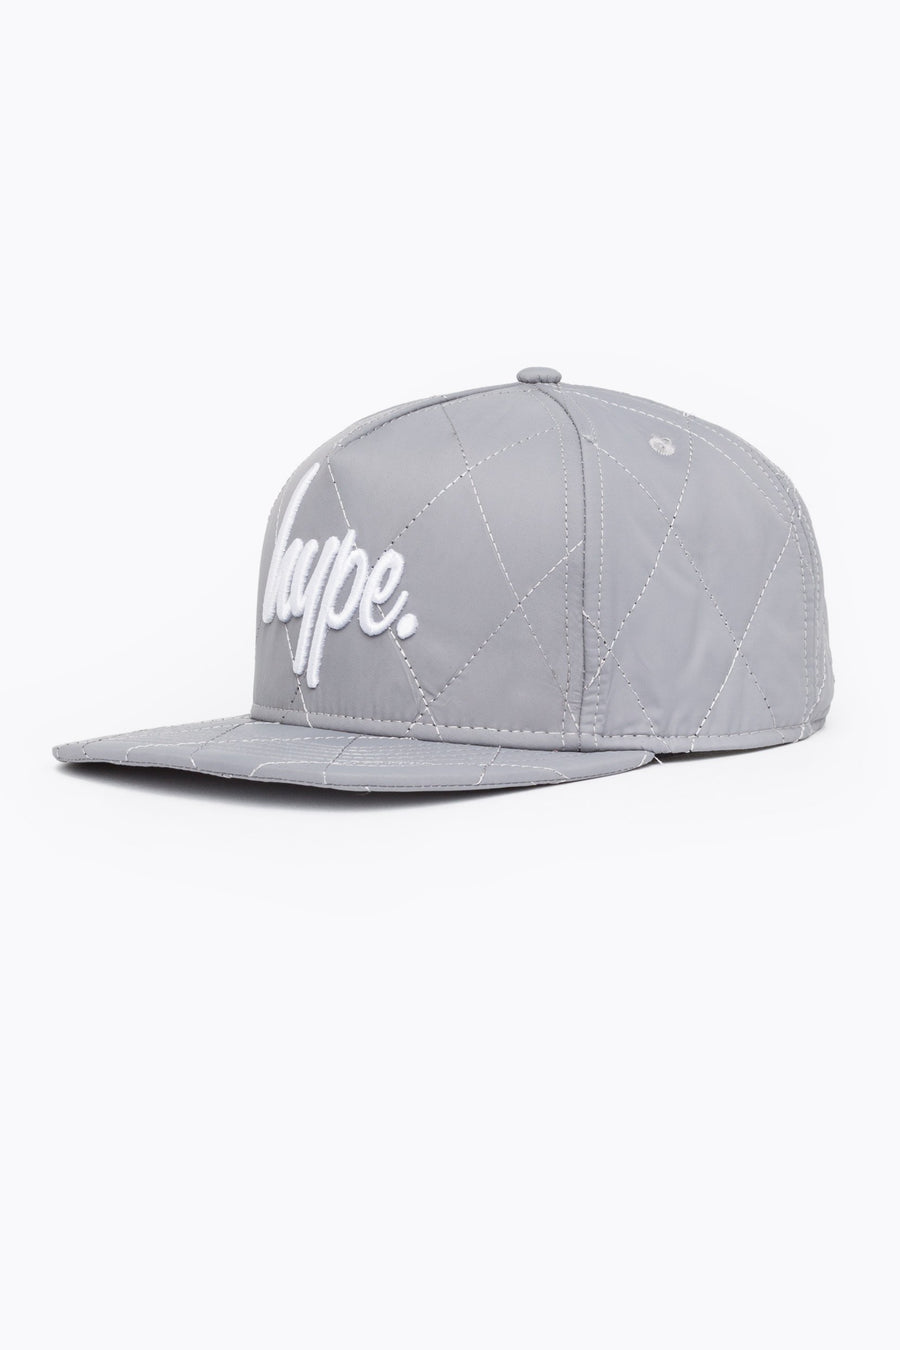 7eed73d866c HYPE Reflective White Quilted Reflective Snapback Hat-Snapback Hat-HYPE .-Weightless